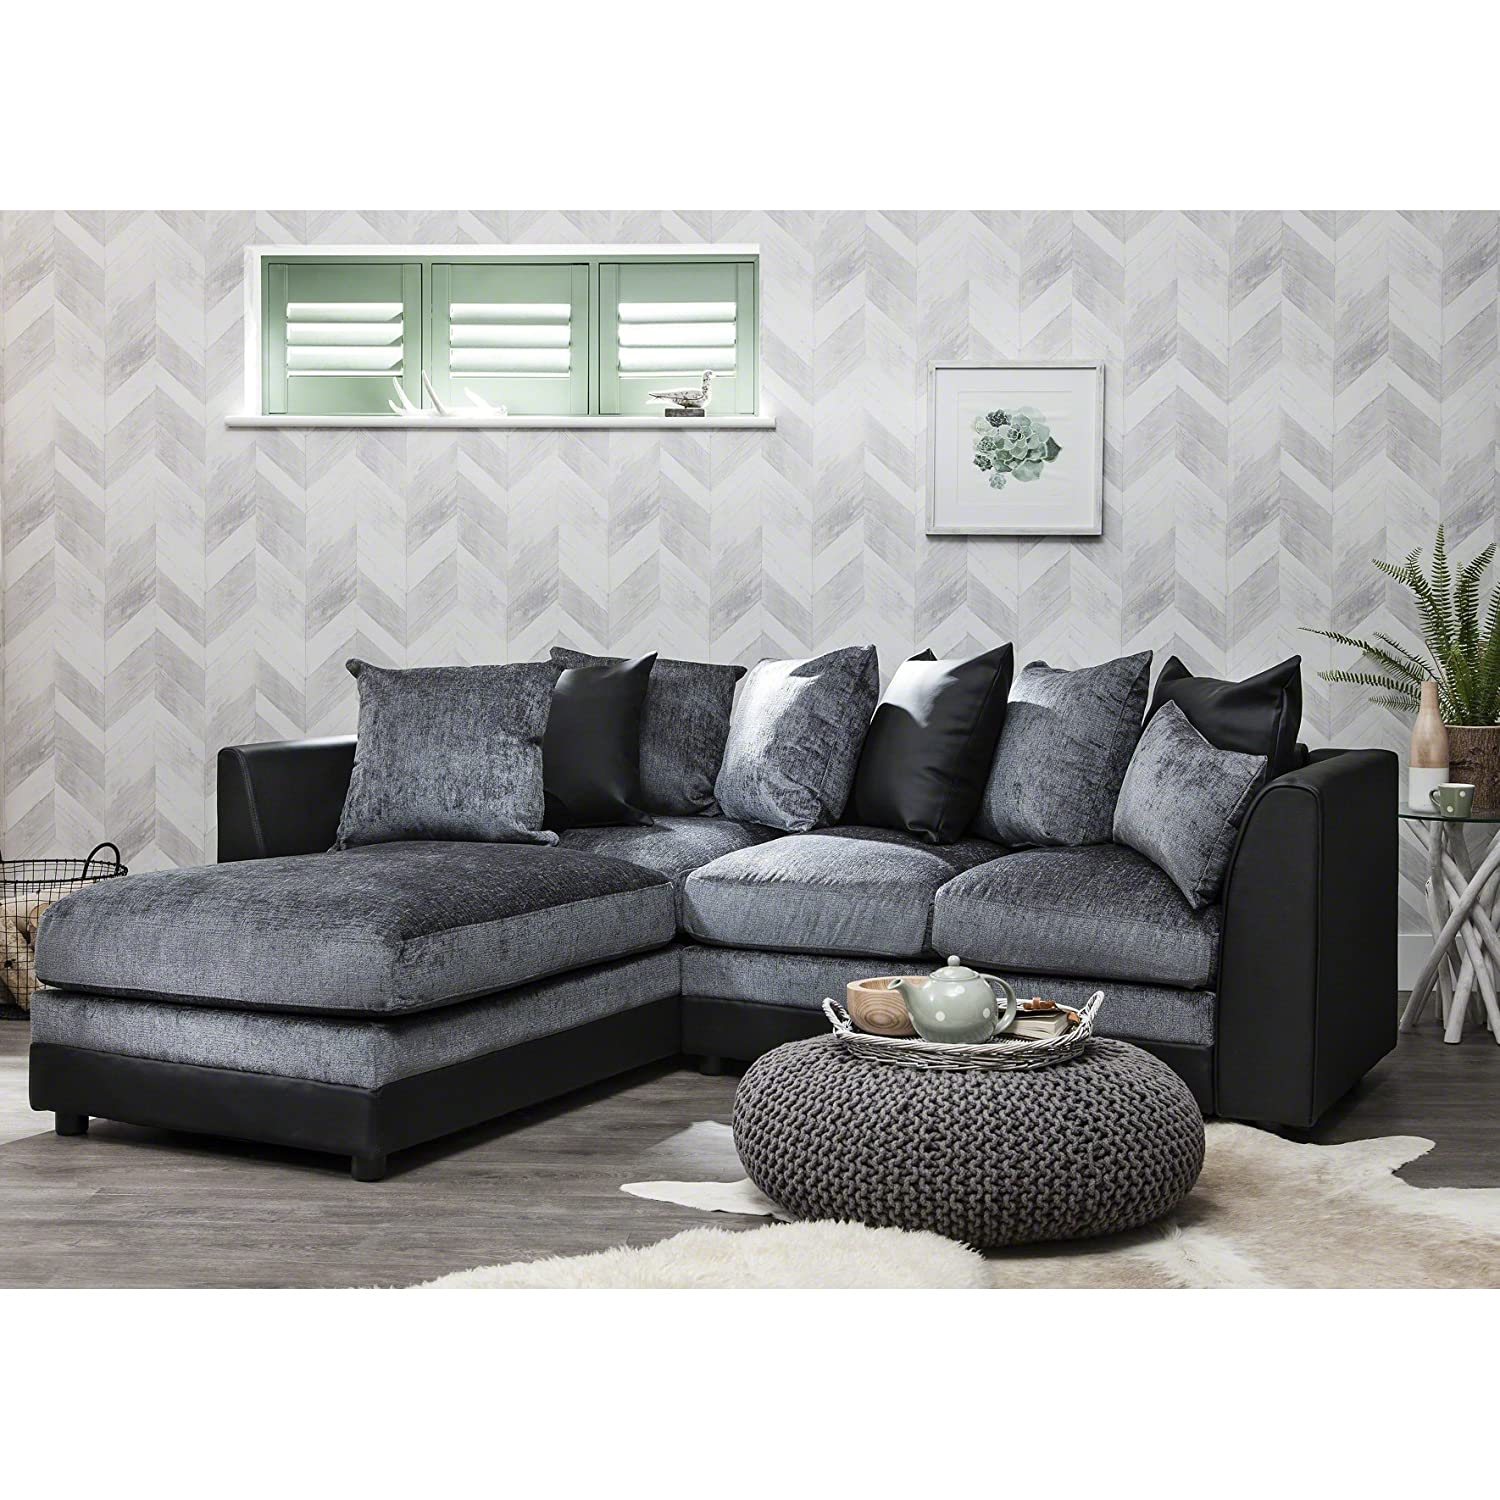 Corner Group Sofa Set Left and Right LEFT BEIGE Amazon